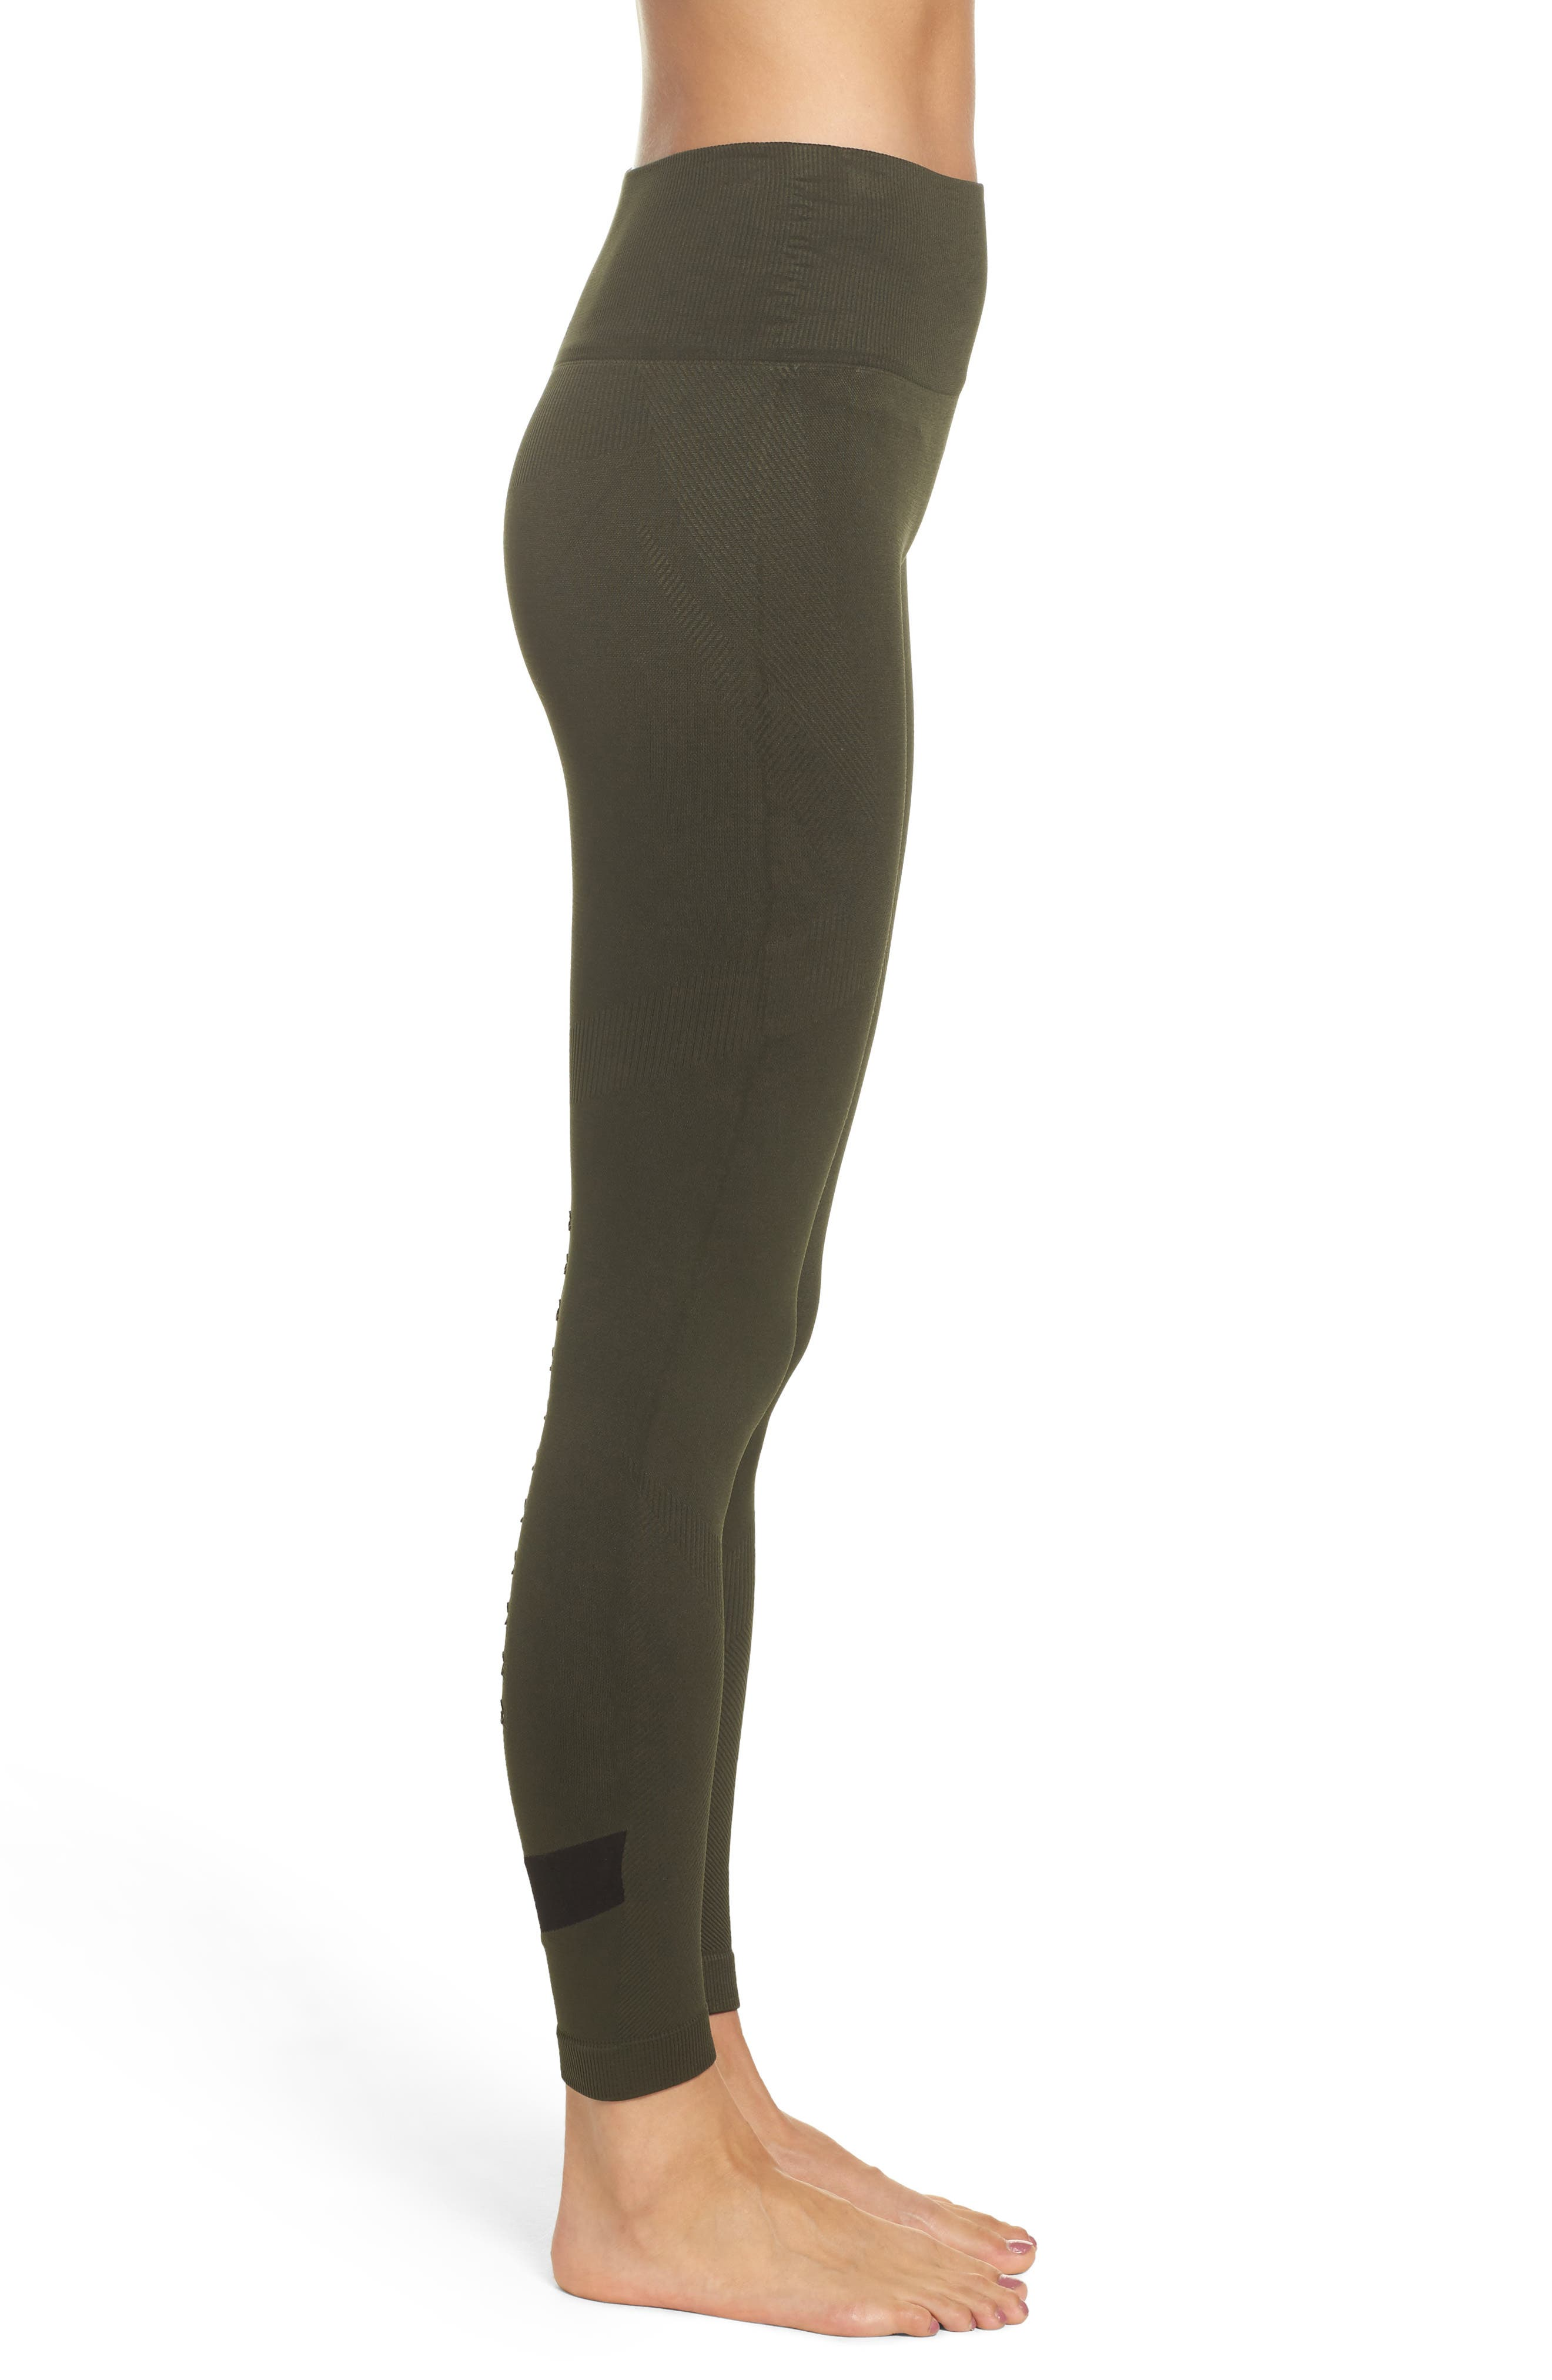 Niche Tights,                             Alternate thumbnail 3, color,                             Army